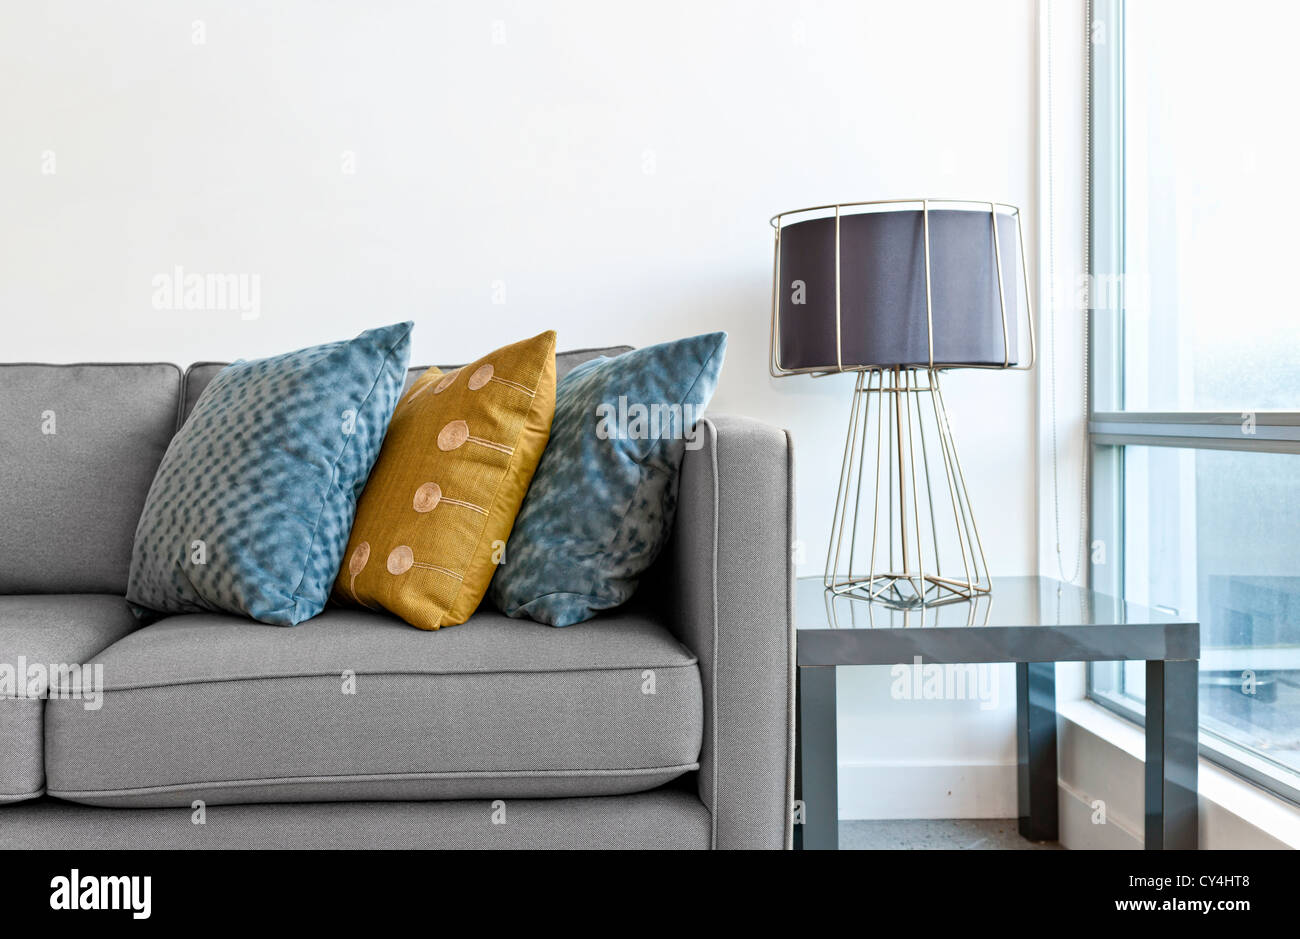 Interior design with couch, colorful cushions and lamp on end table - Stock Image